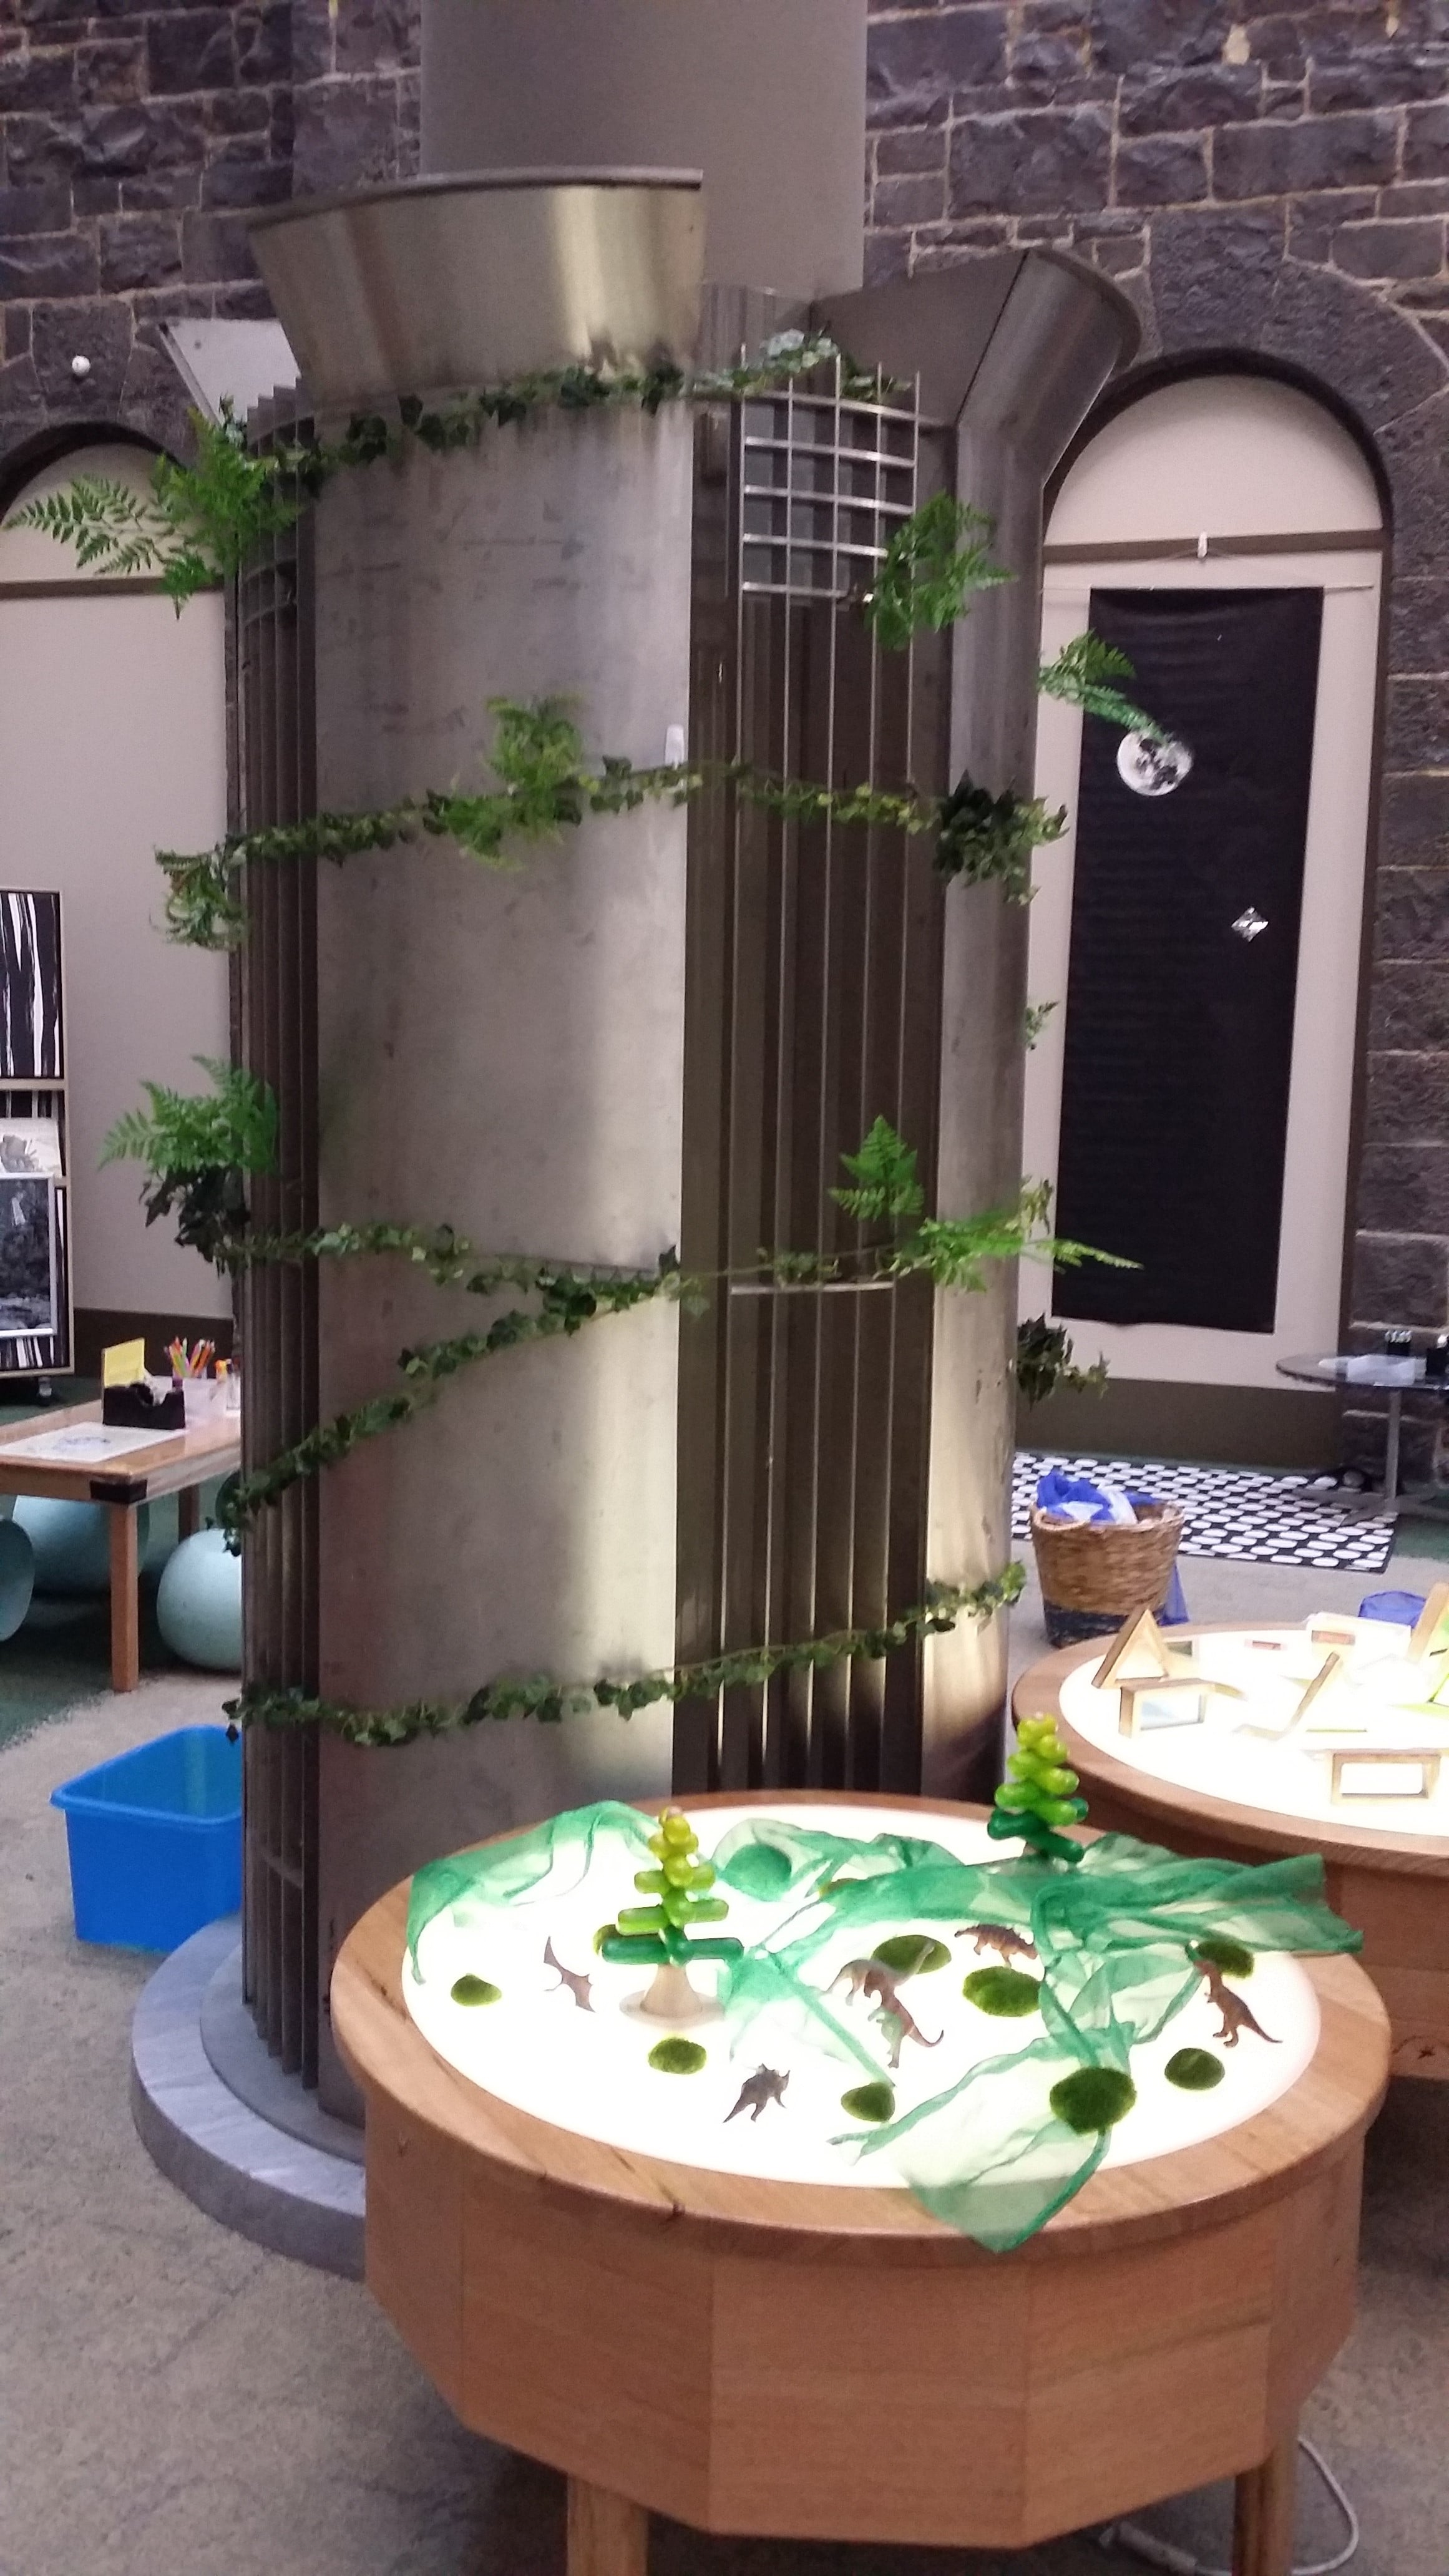 Children are encouraged to add to the forest of vines around the pillar, celebrating their own creative work.